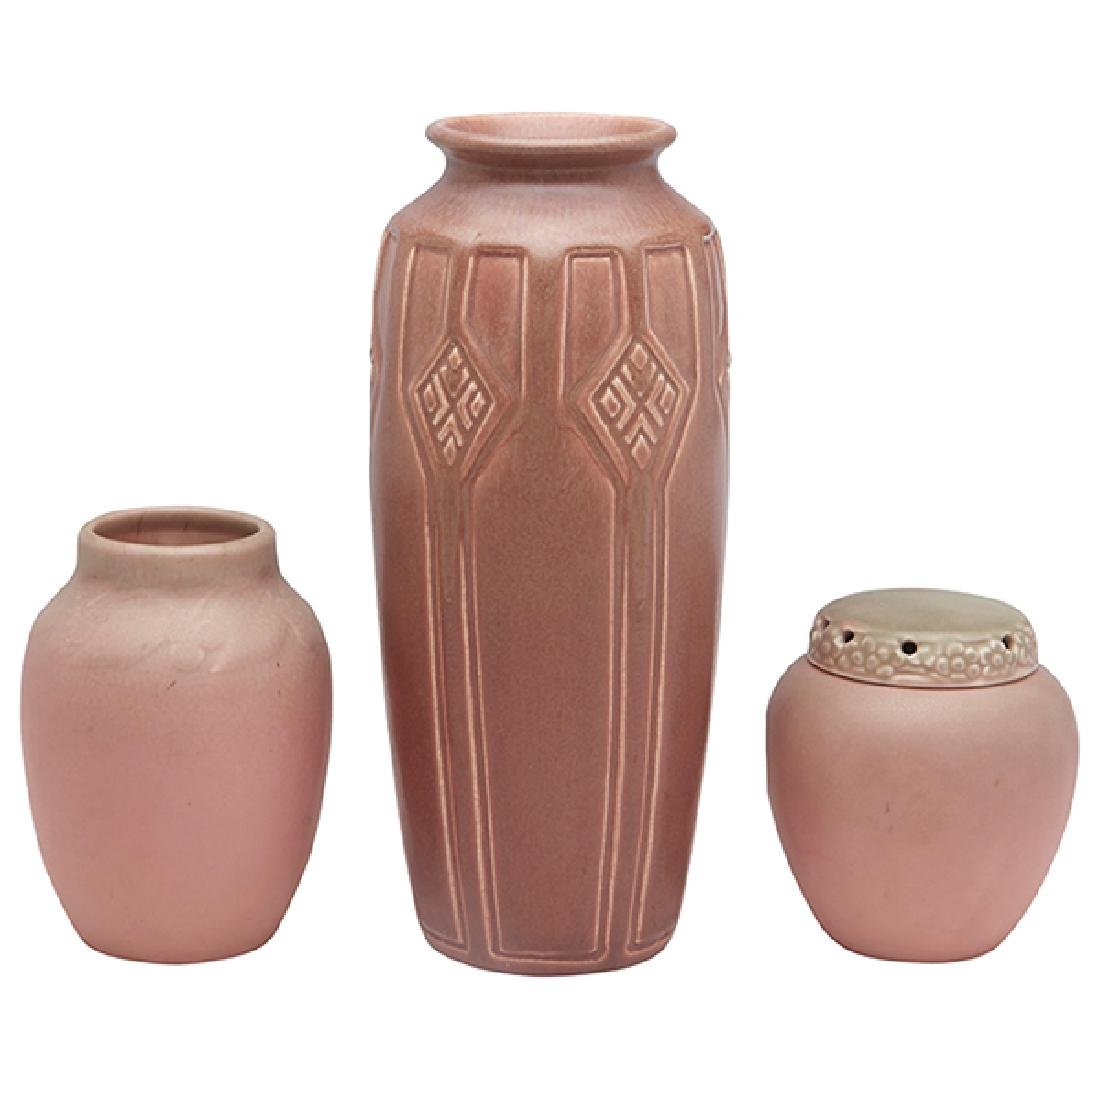 Rookwood Pottery, two vases and one potpourri jar,